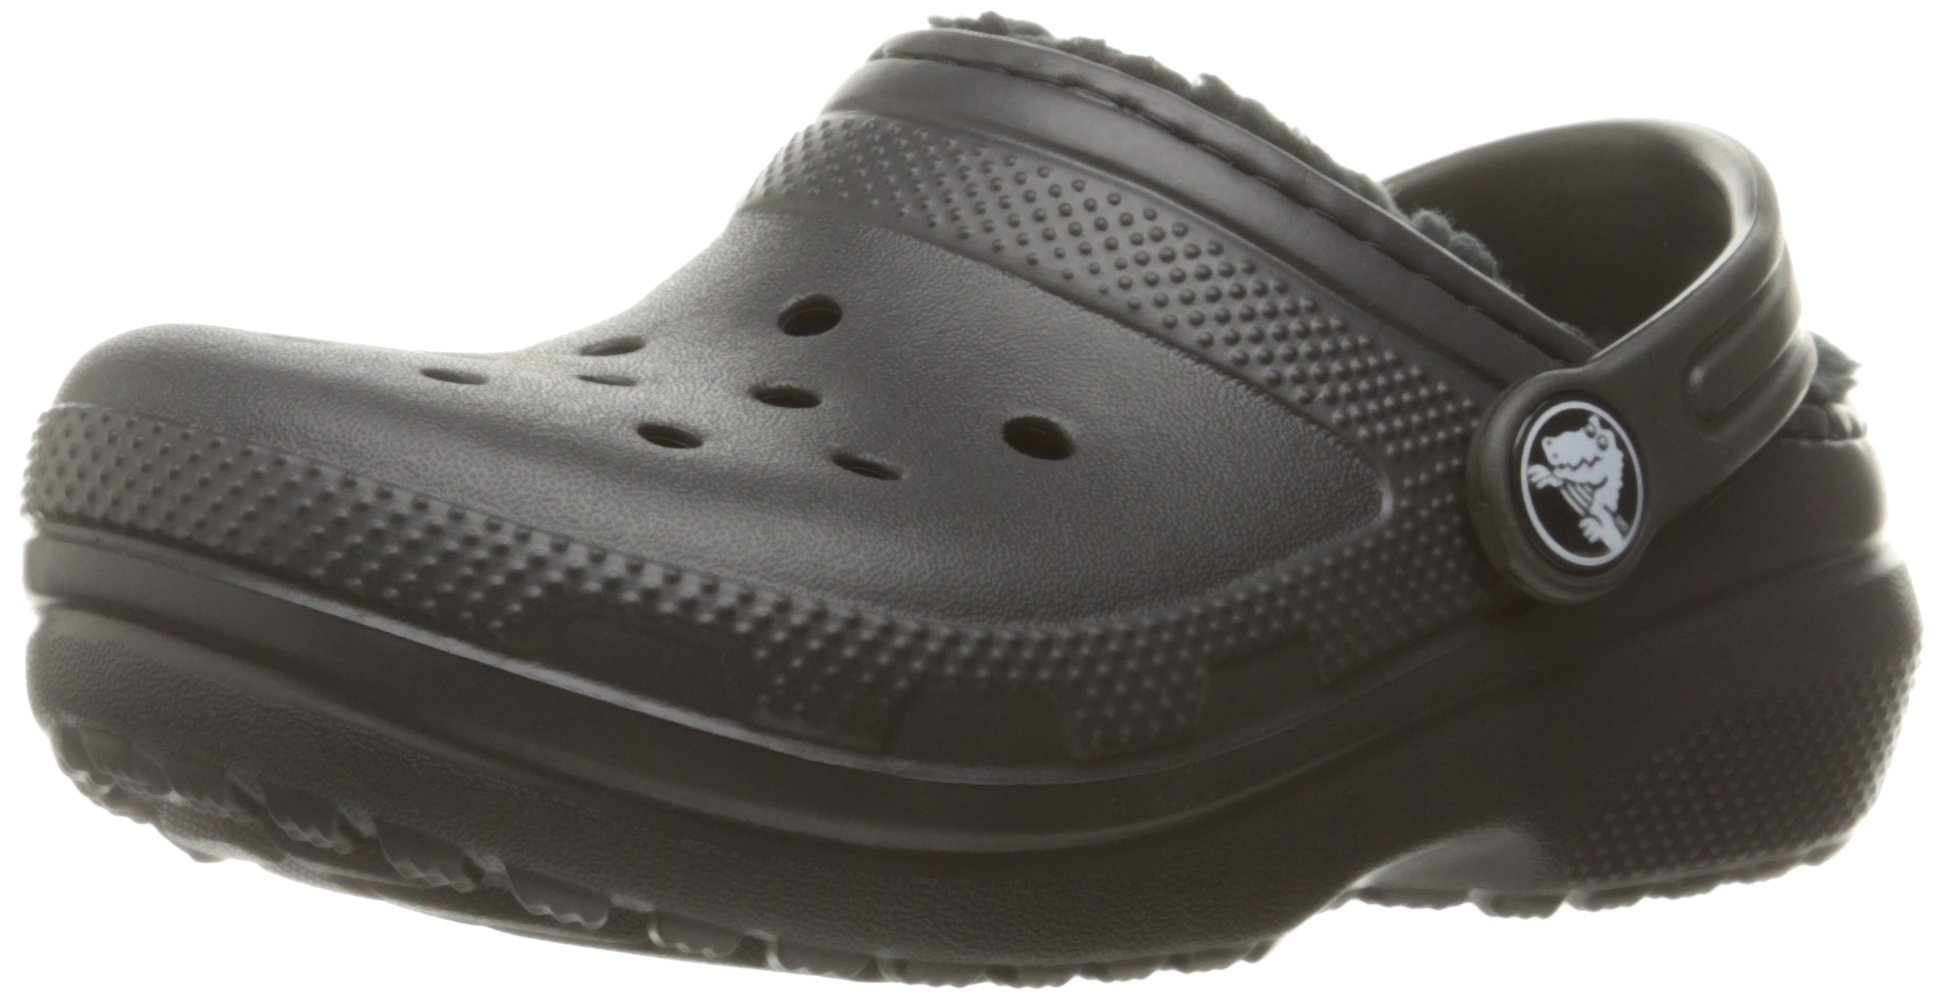 crocs Classic Lined Clog (Toddler/Little Kid), Black/Black, 8 M US Toddler by Crocs